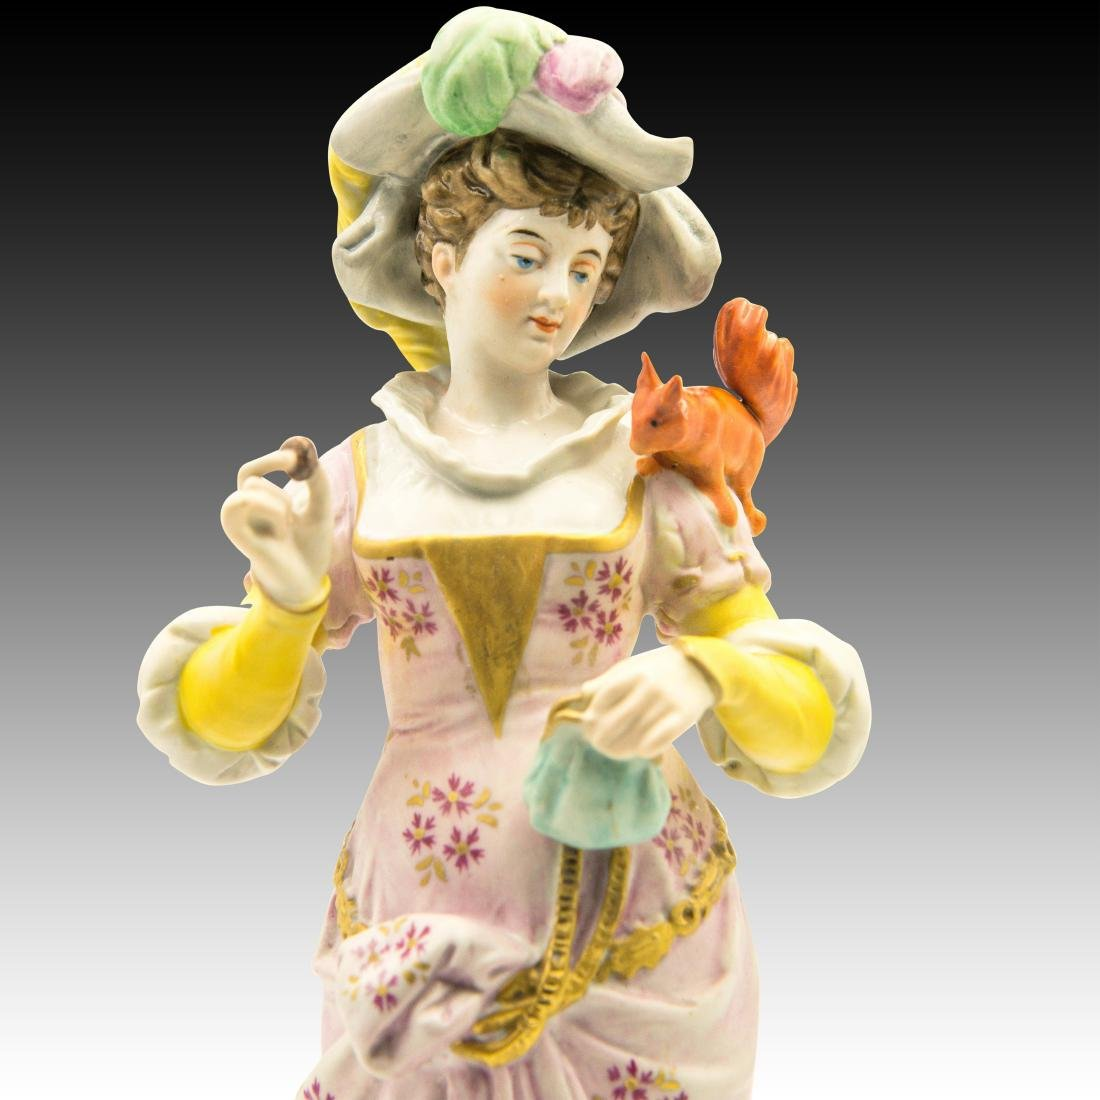 Woman with a Squirrel on her Shoulder Figurine - 5